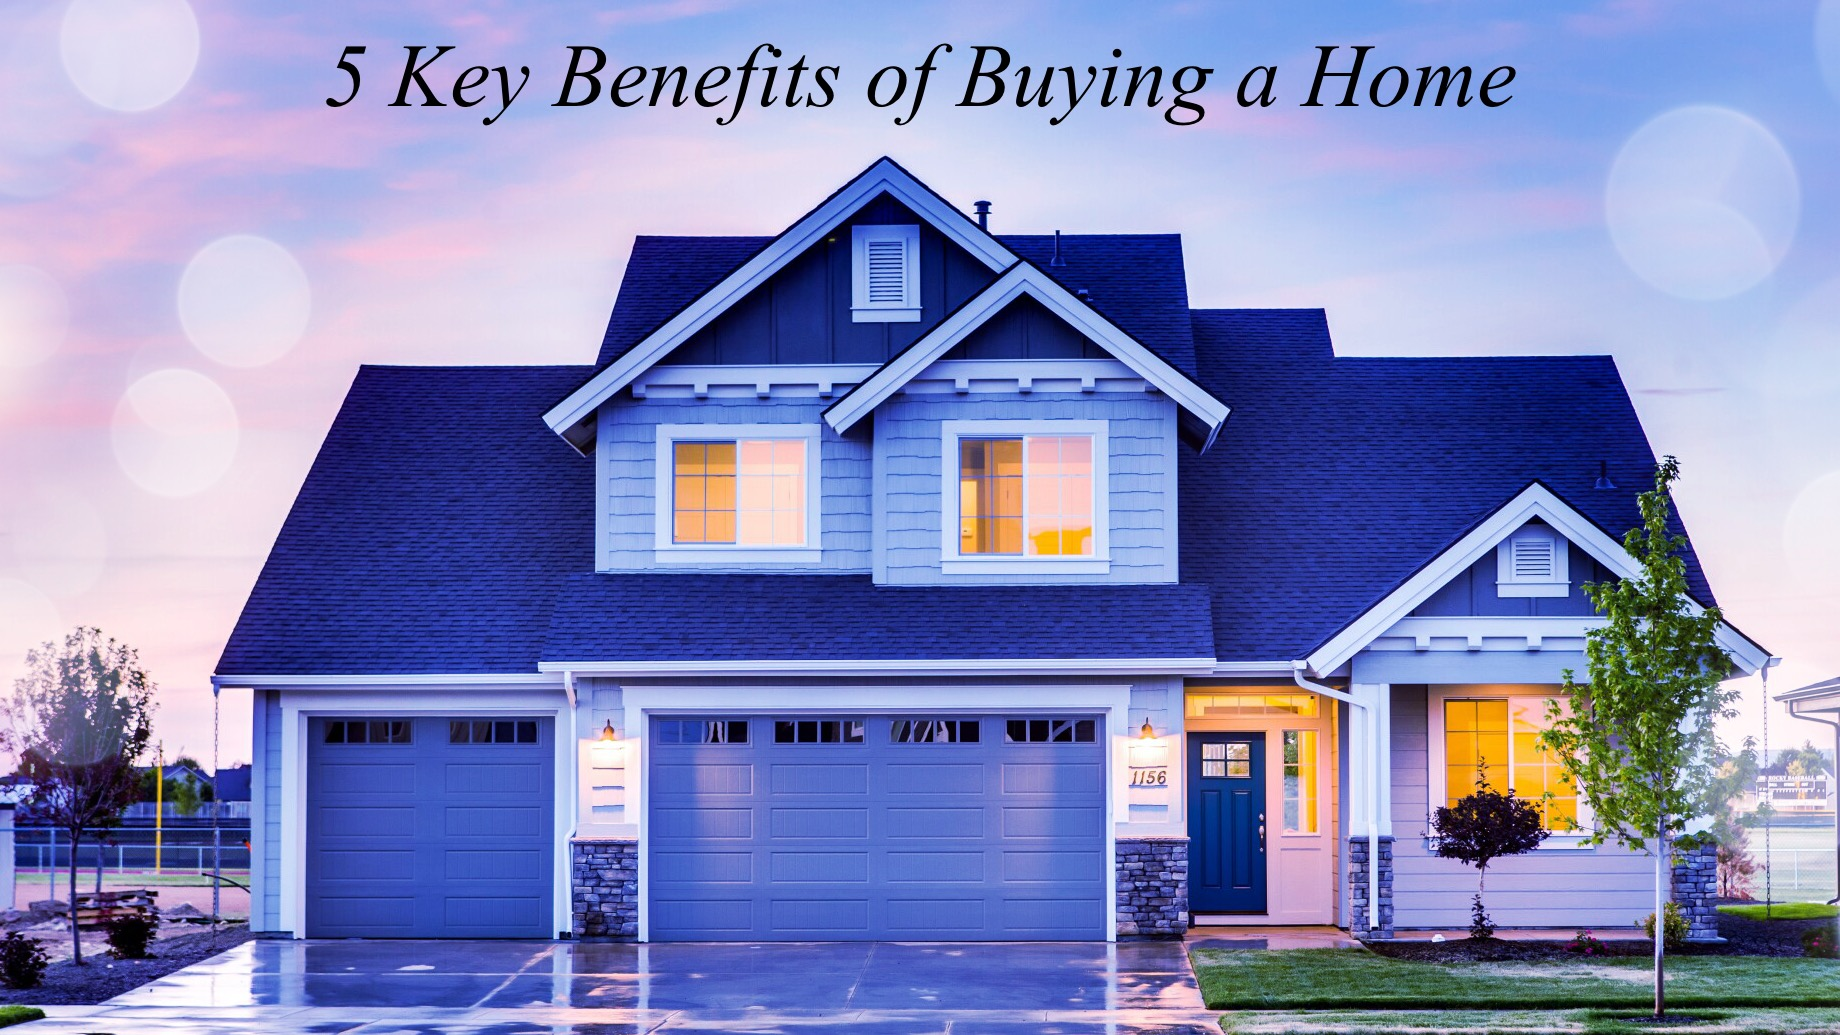 5 Key Benefits of Buying a Home